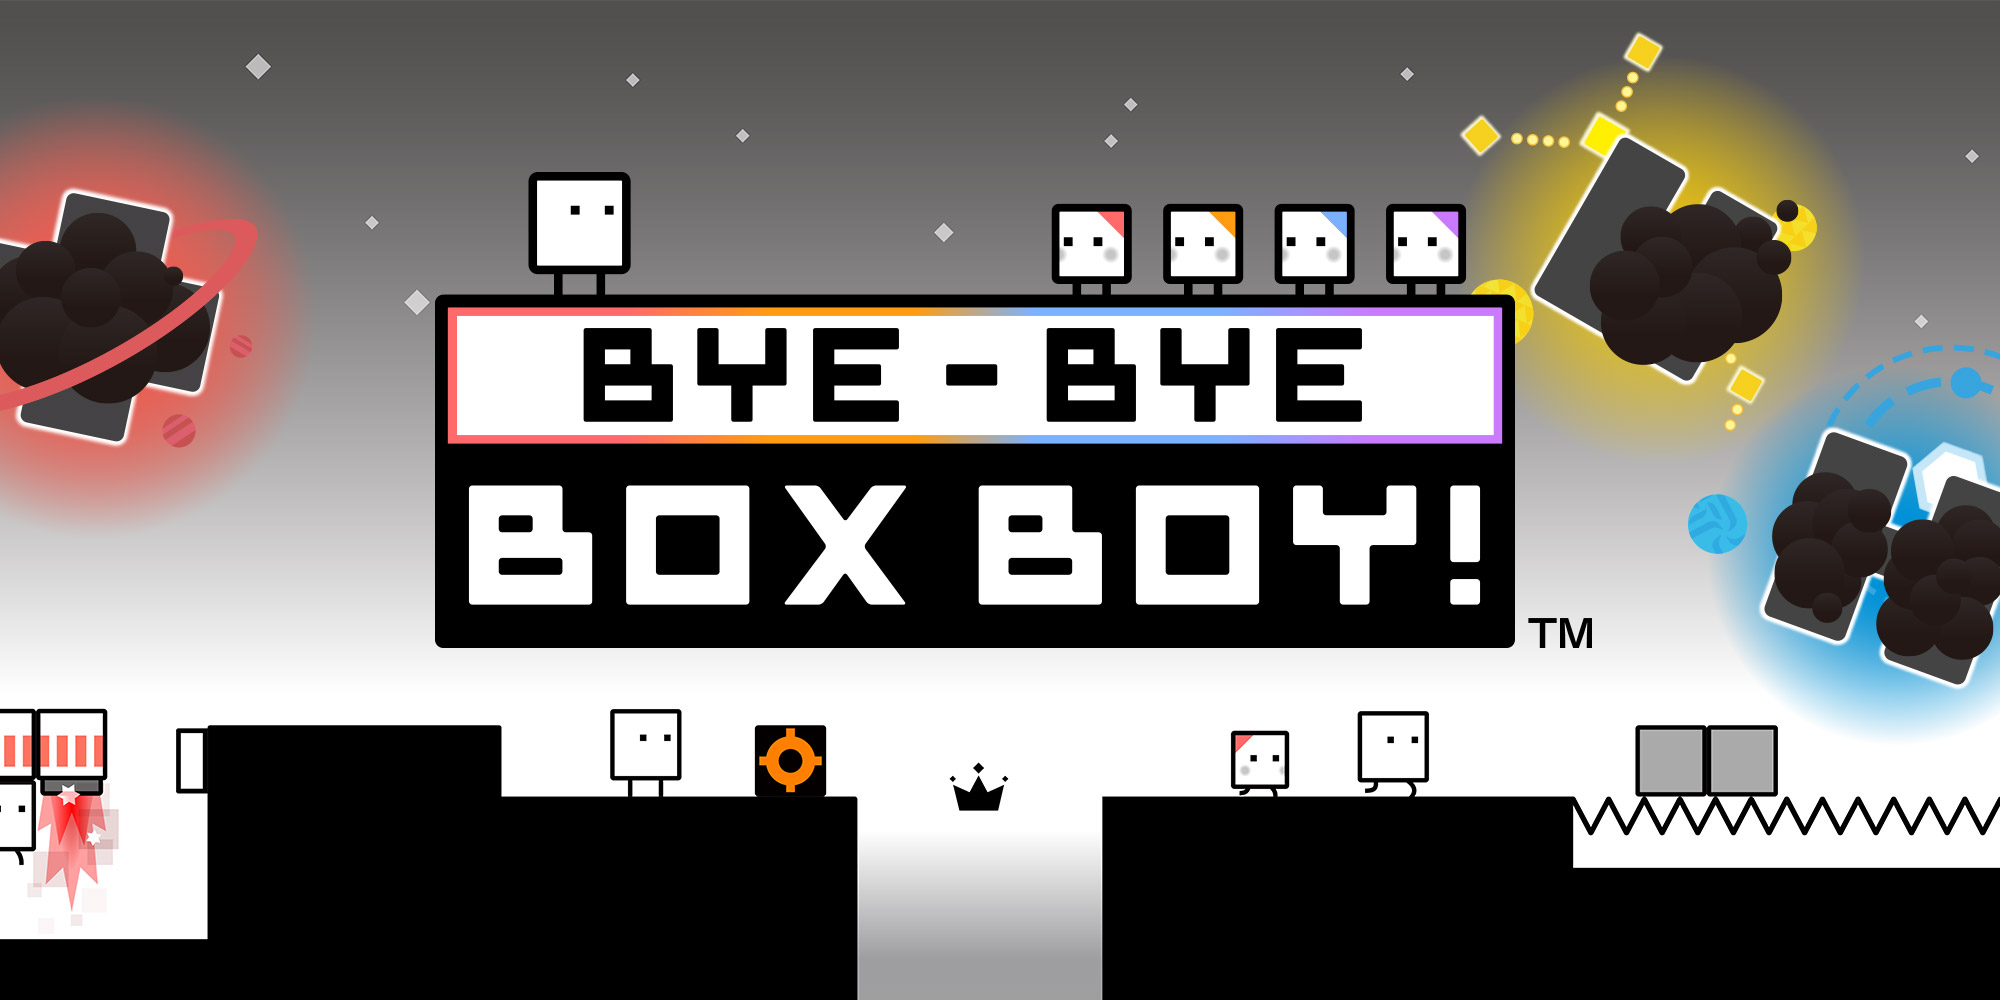 On Nintendo eShop now: BYE-BYE BOXBOY!